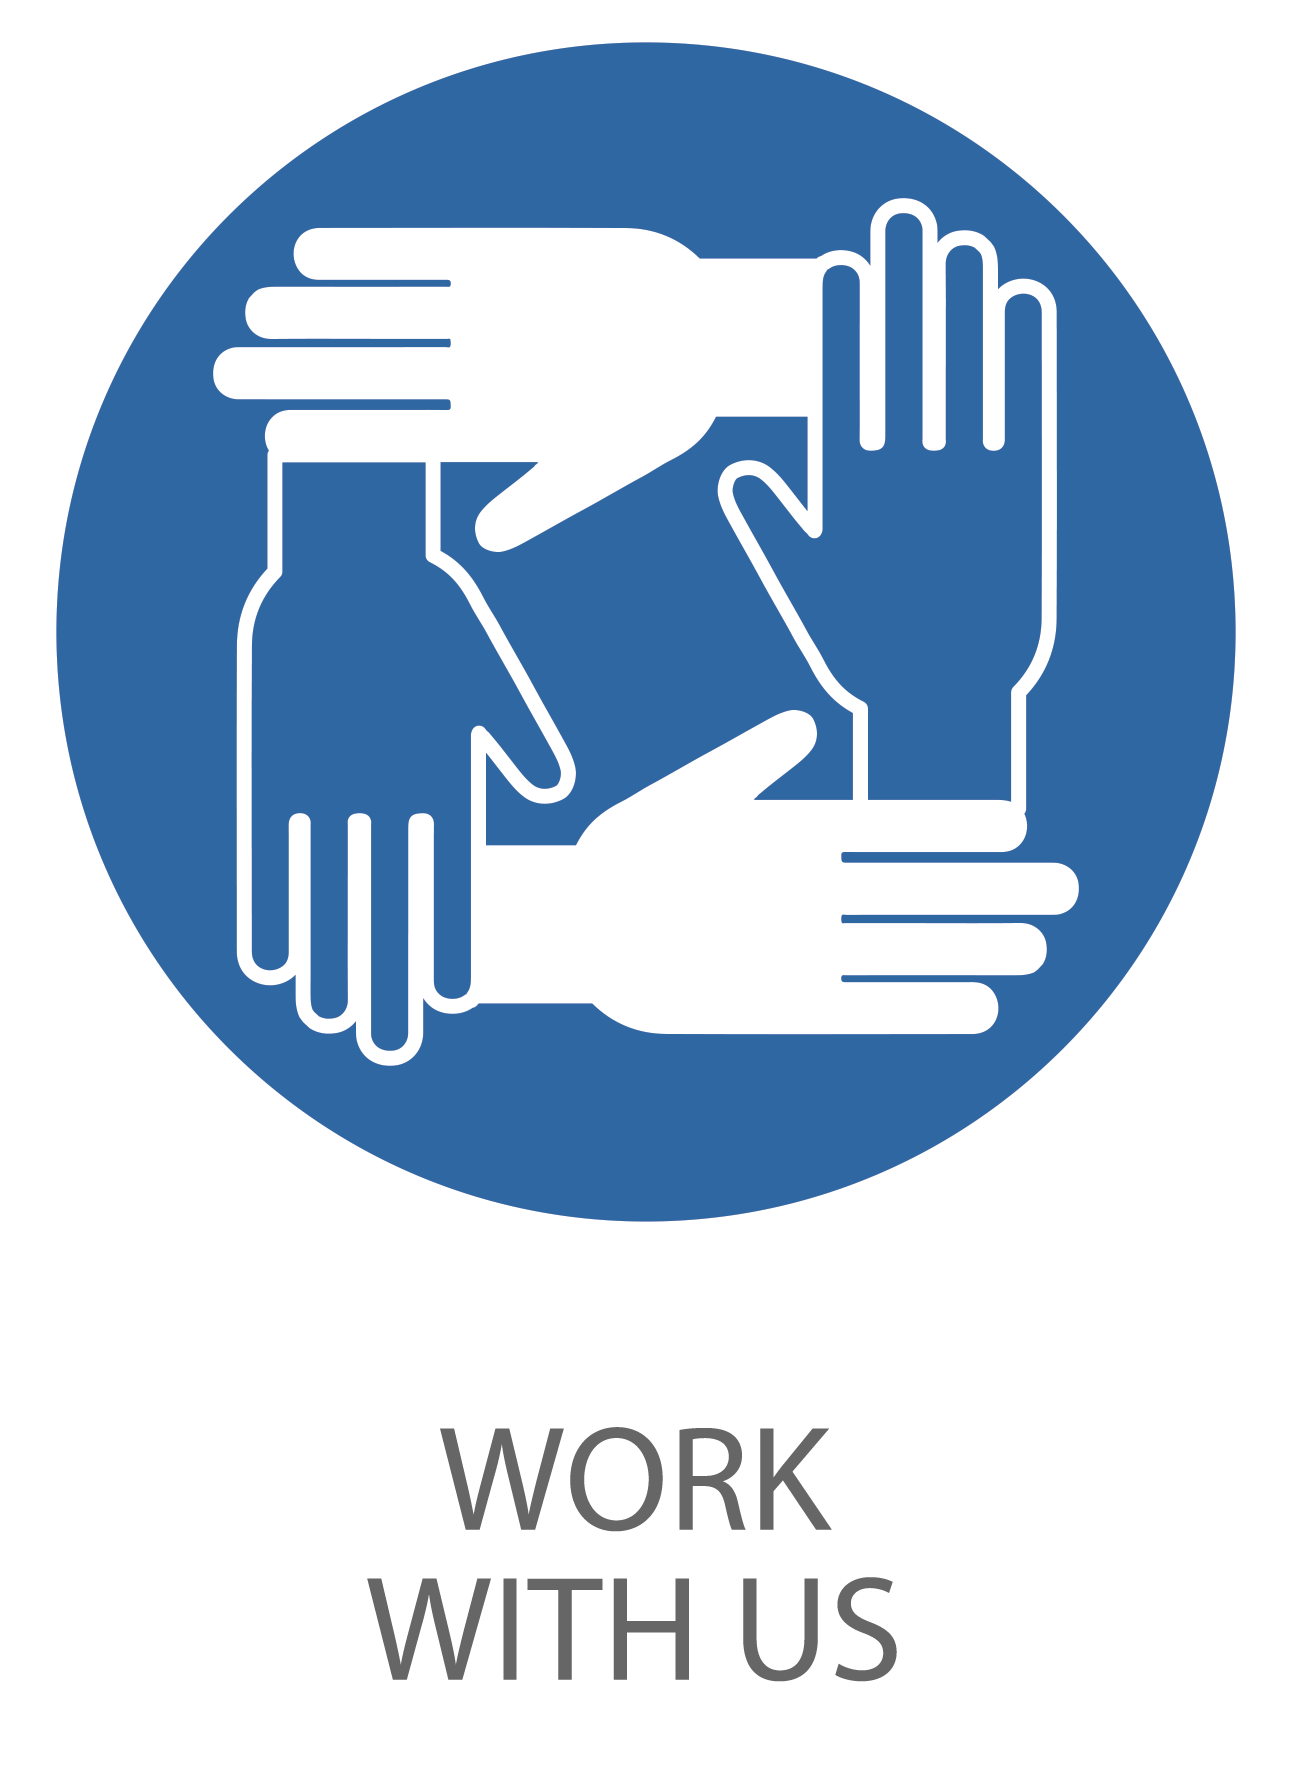 Icon of 4 interlocked hands symbolizing work with us